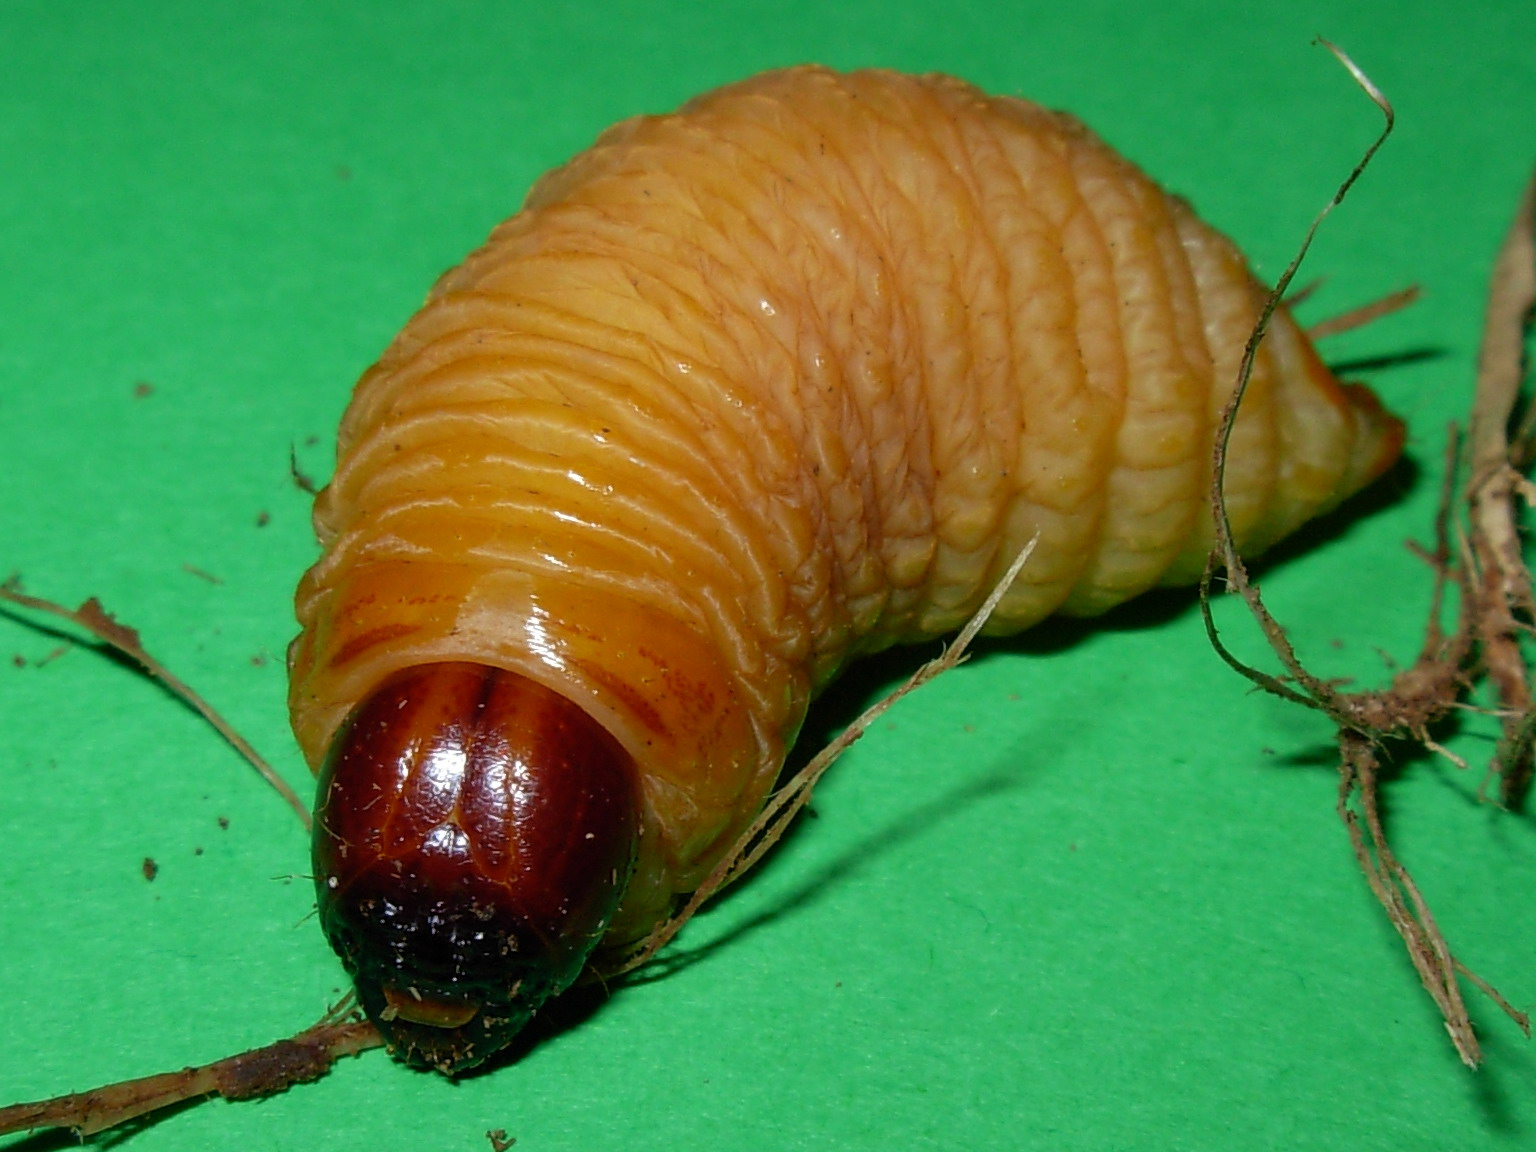 Fish moth larvae images, jerusalem cricket larvae, photos of larva